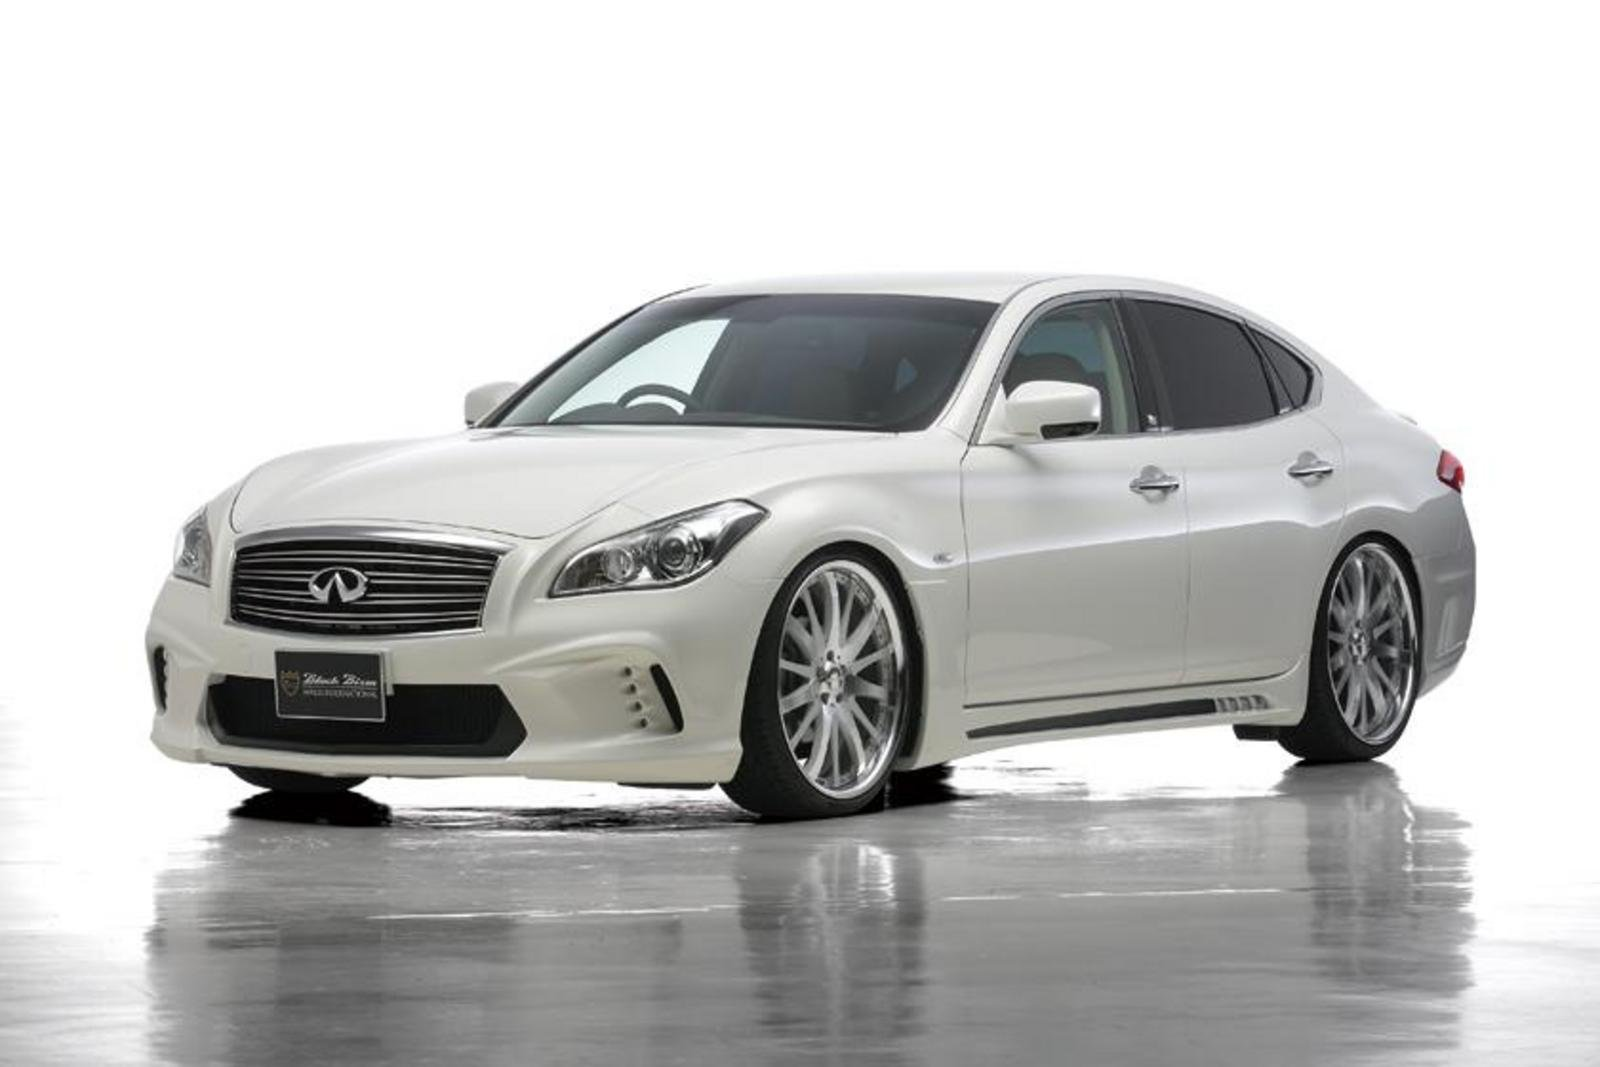 2013 Infiniti M Black Bison By Wald International Review